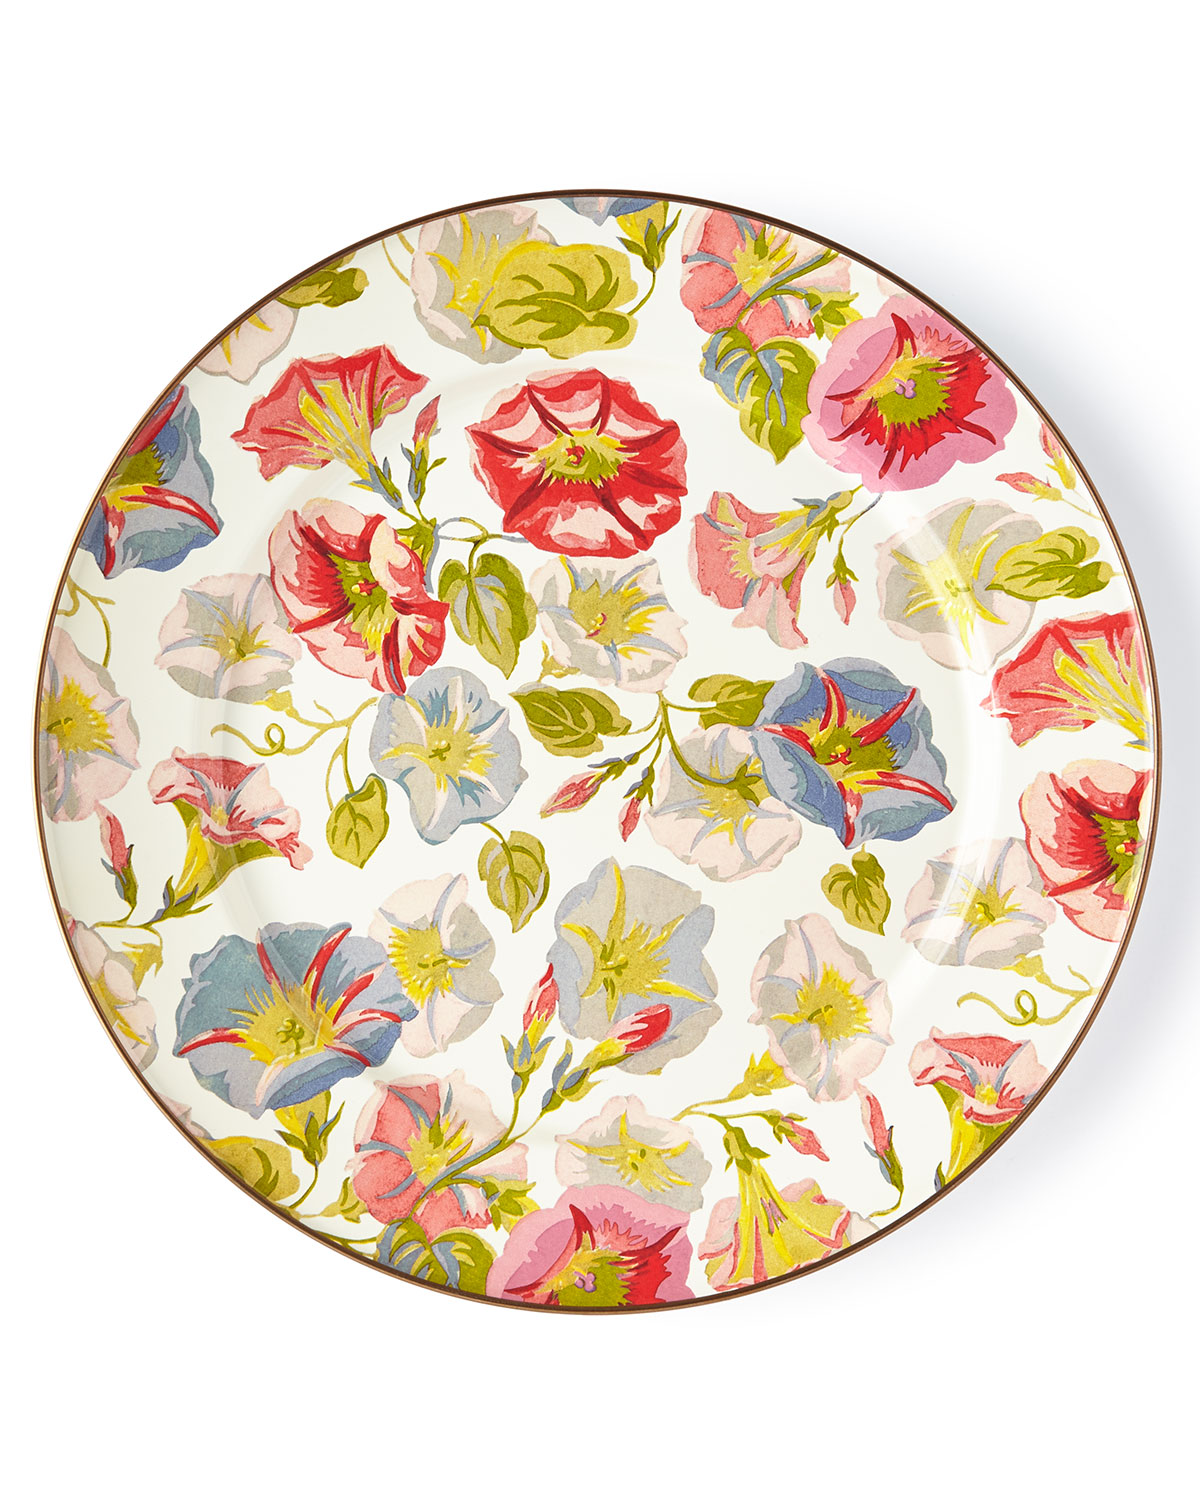 Morning Glory Charger Plate